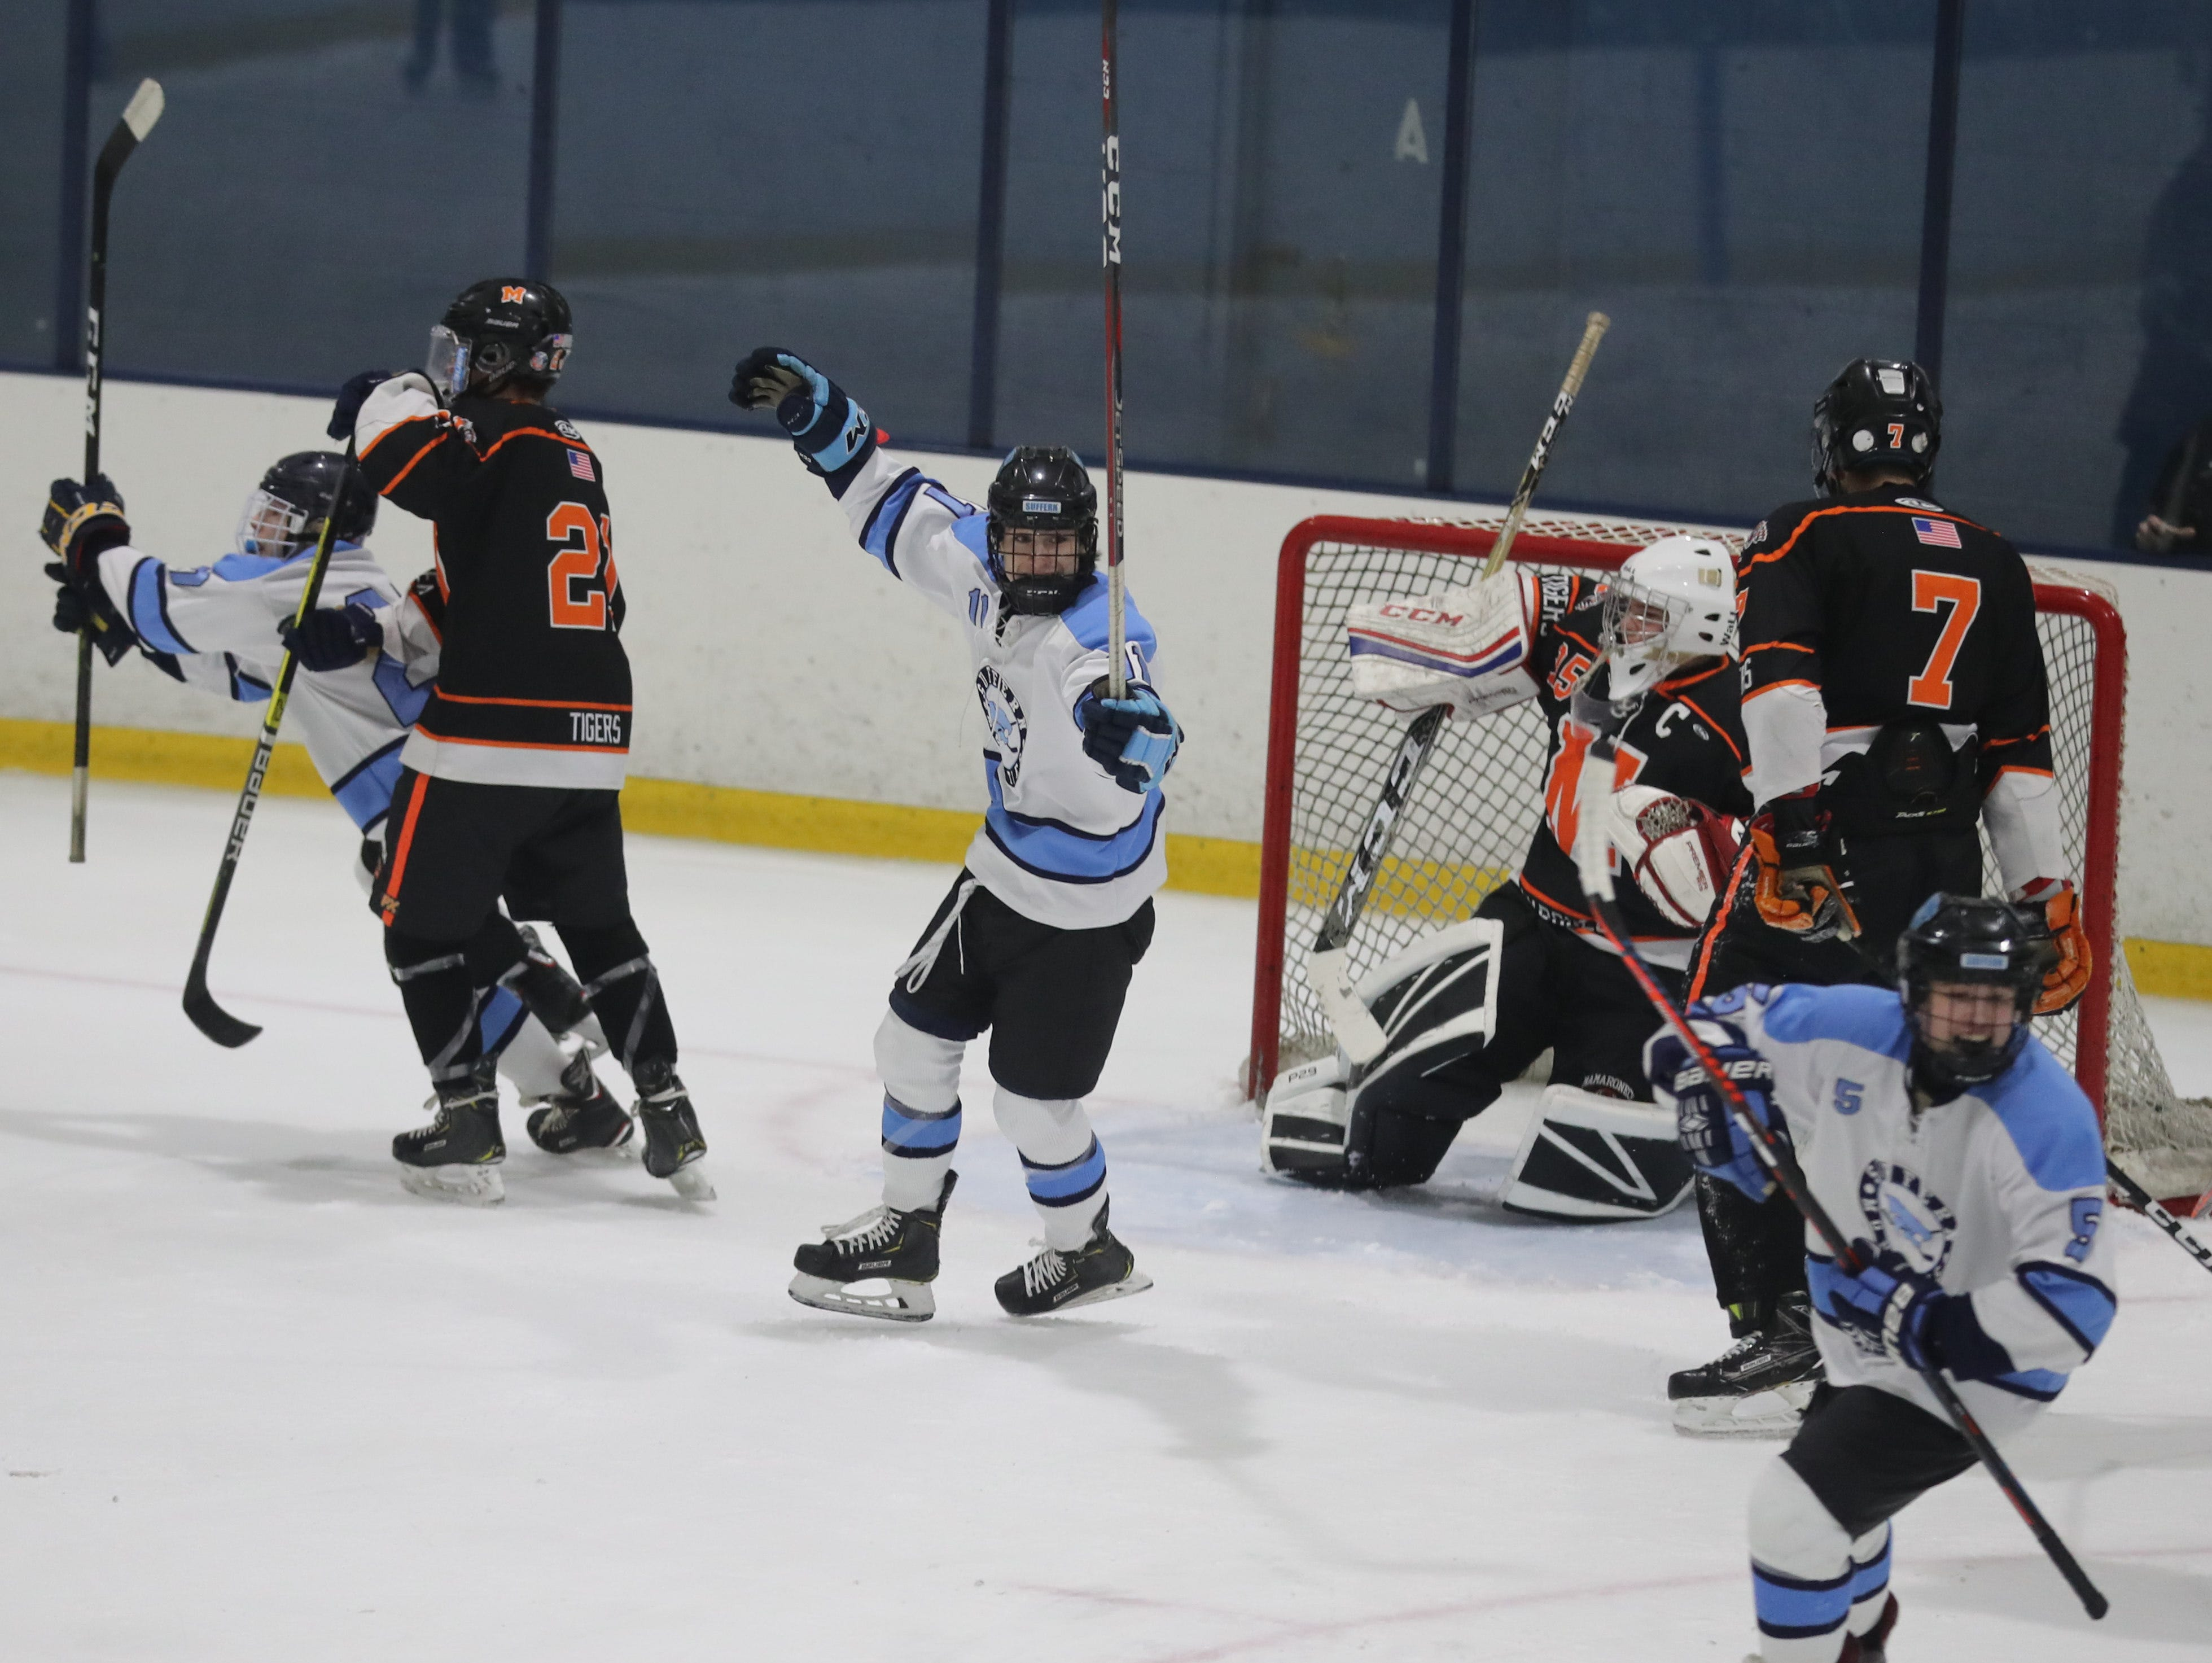 Suffern celebrates a goal against Mamaroneck during the Section 1 Division 1 championship game at Sport-o-Rama in Monsey Feb. 24, 2019. Suffern defeated Mamaroneck 4-1.